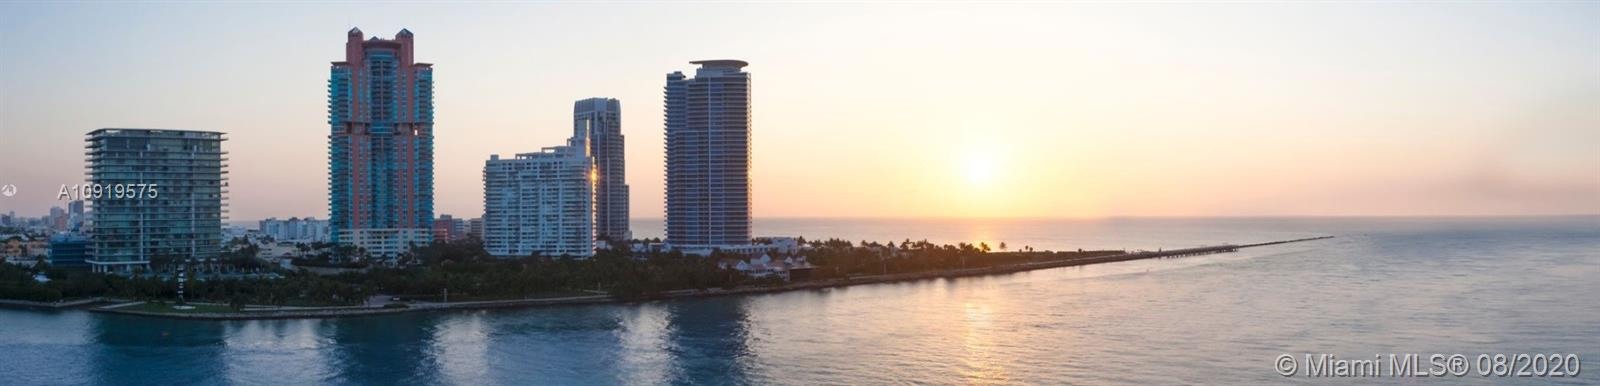 Contact Listing Agent for more information about this 5 Bedroom/6 Bathroom + Powder Corner Residence with Direct Ocean Views at Palazzo Della Luna.